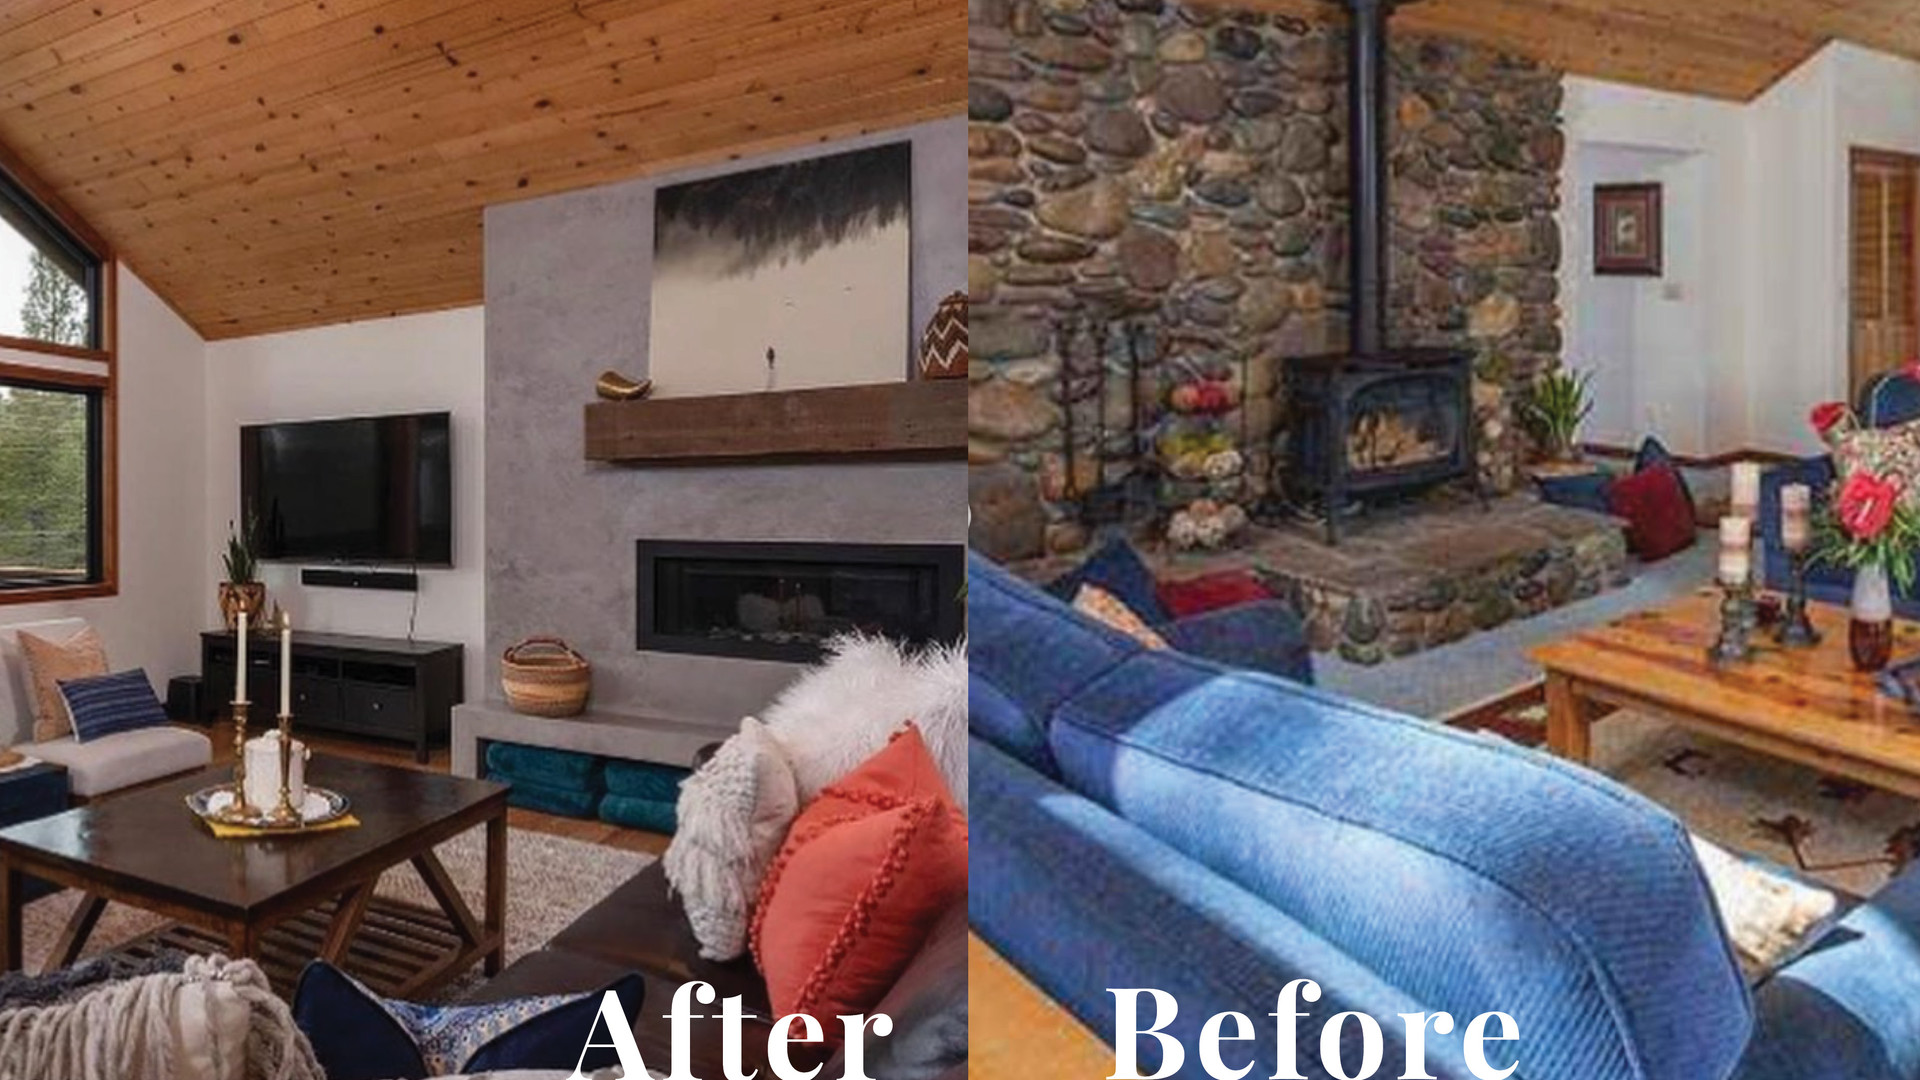 Tinsel house before and after4.jpg